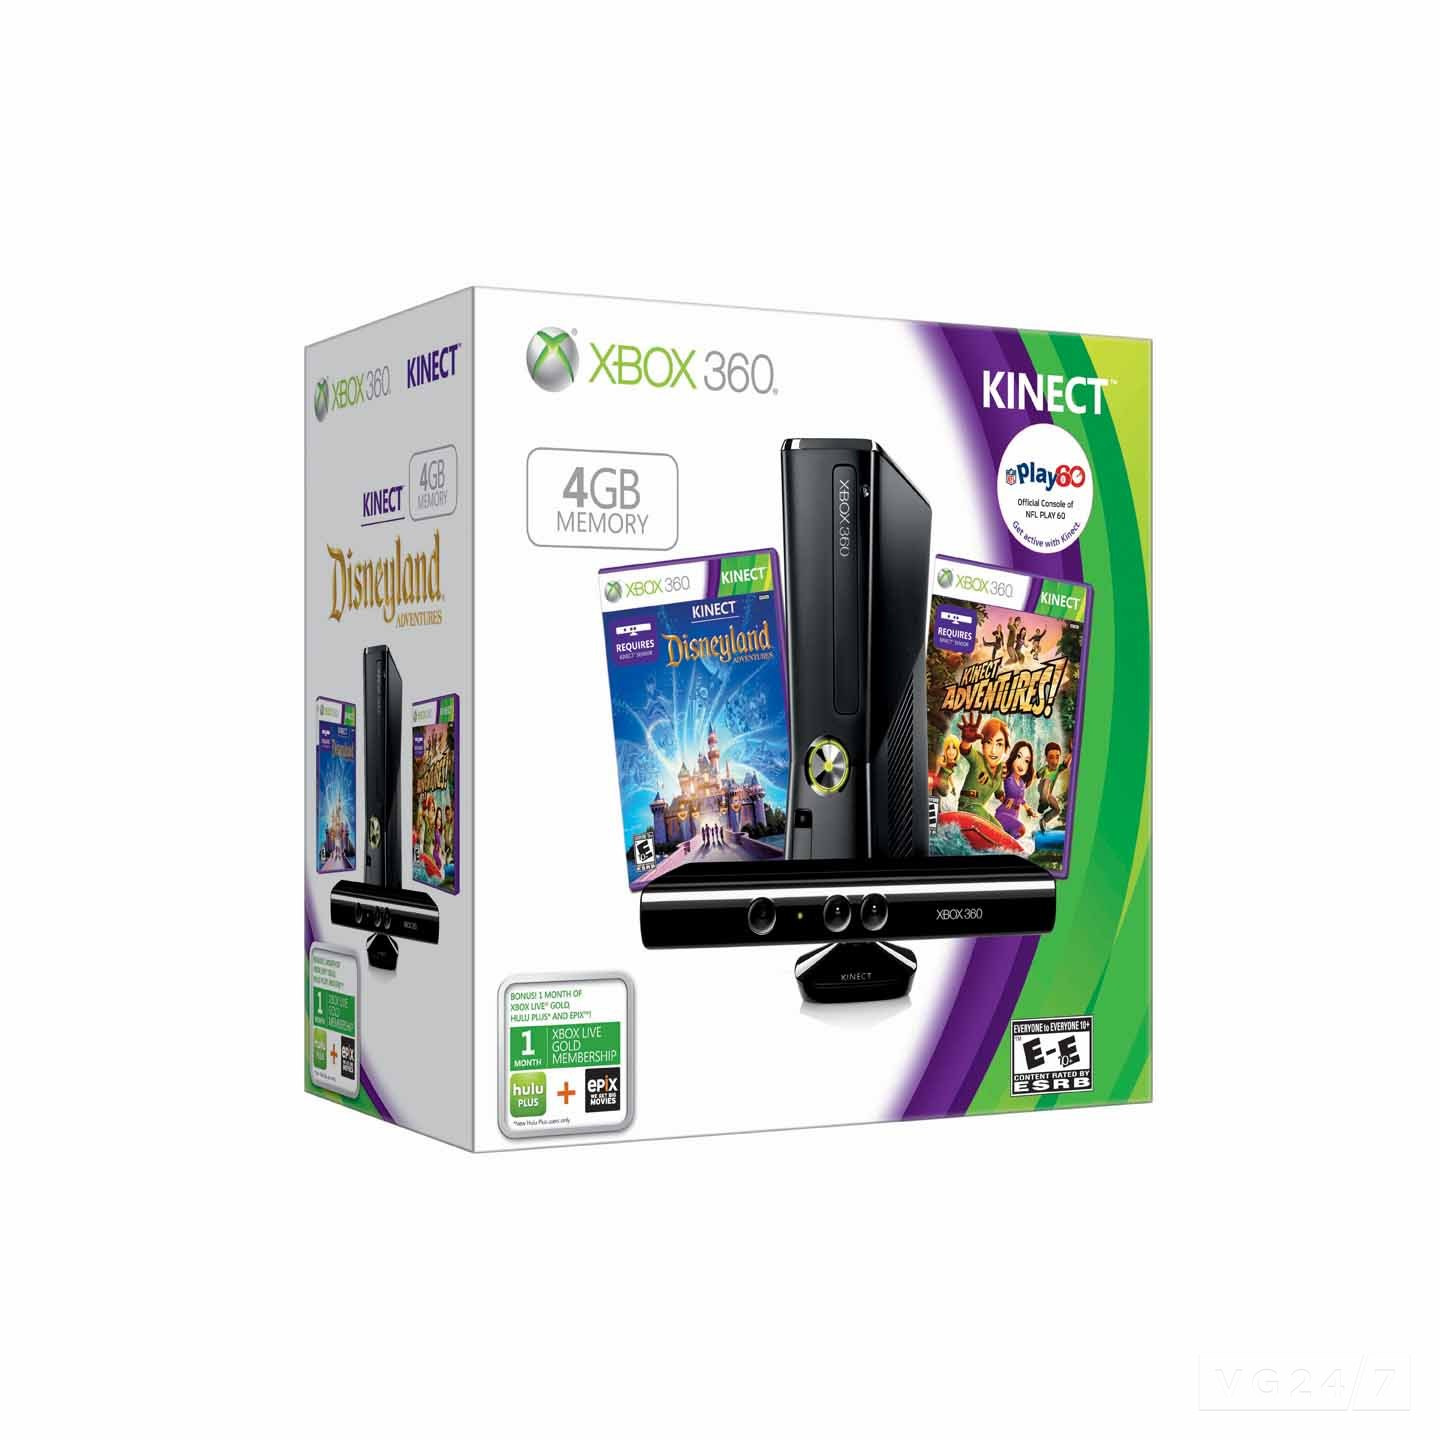 Xbox 360 Holiday 2012 bundles and $50 off promotion ...